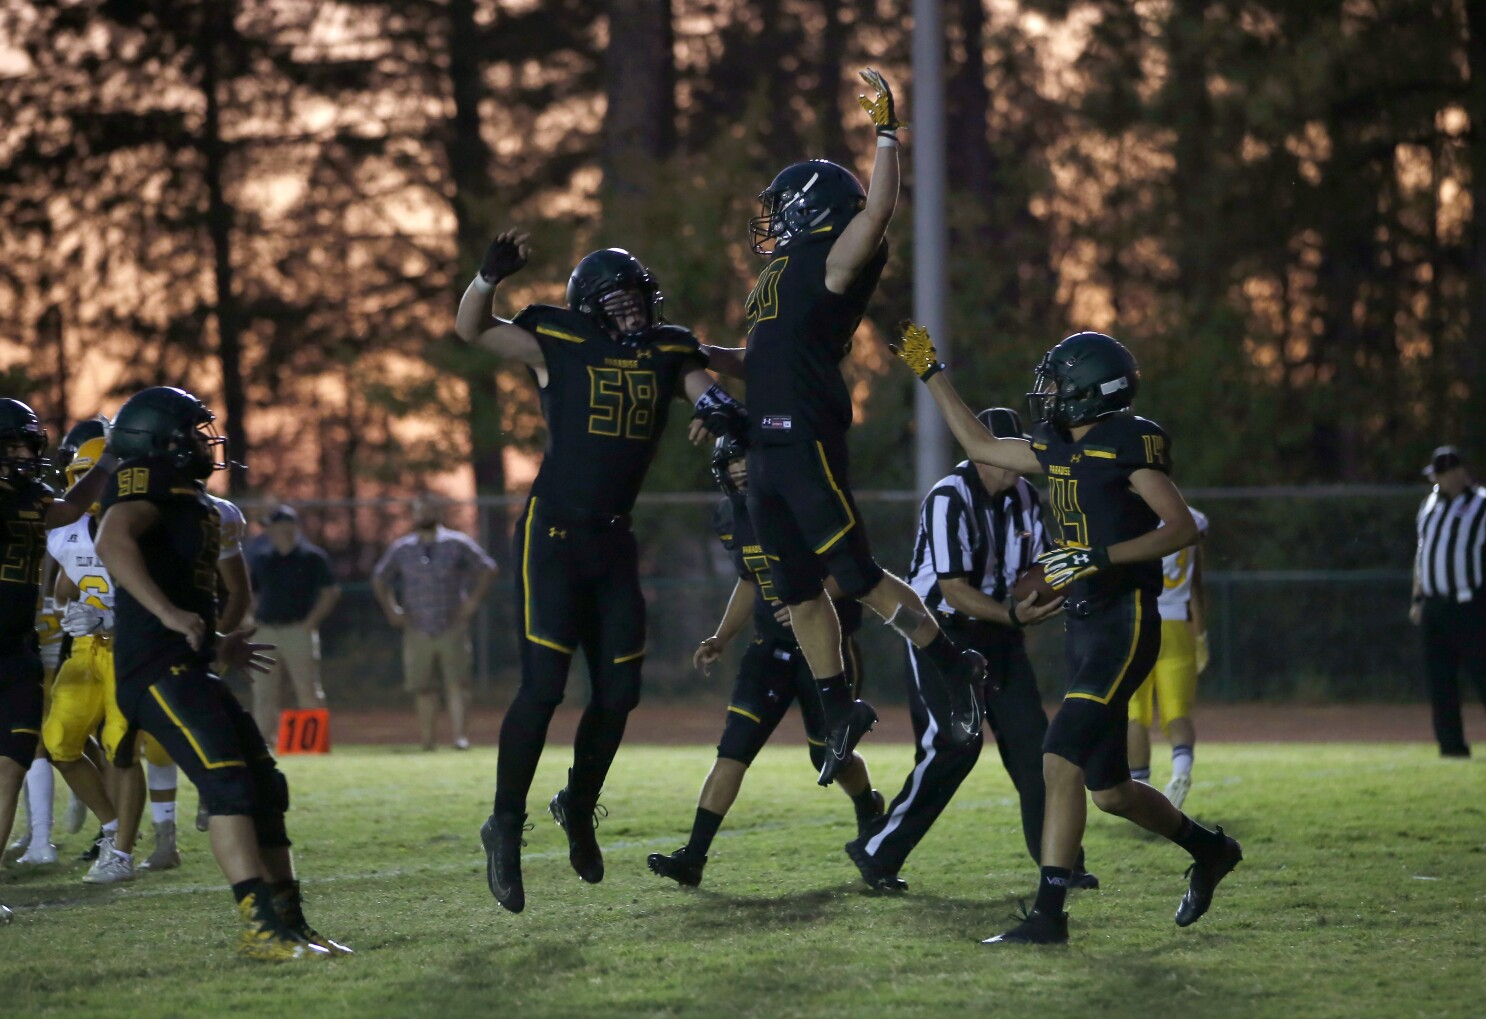 Paradise, the town devastated by wildfire, savors high school football win